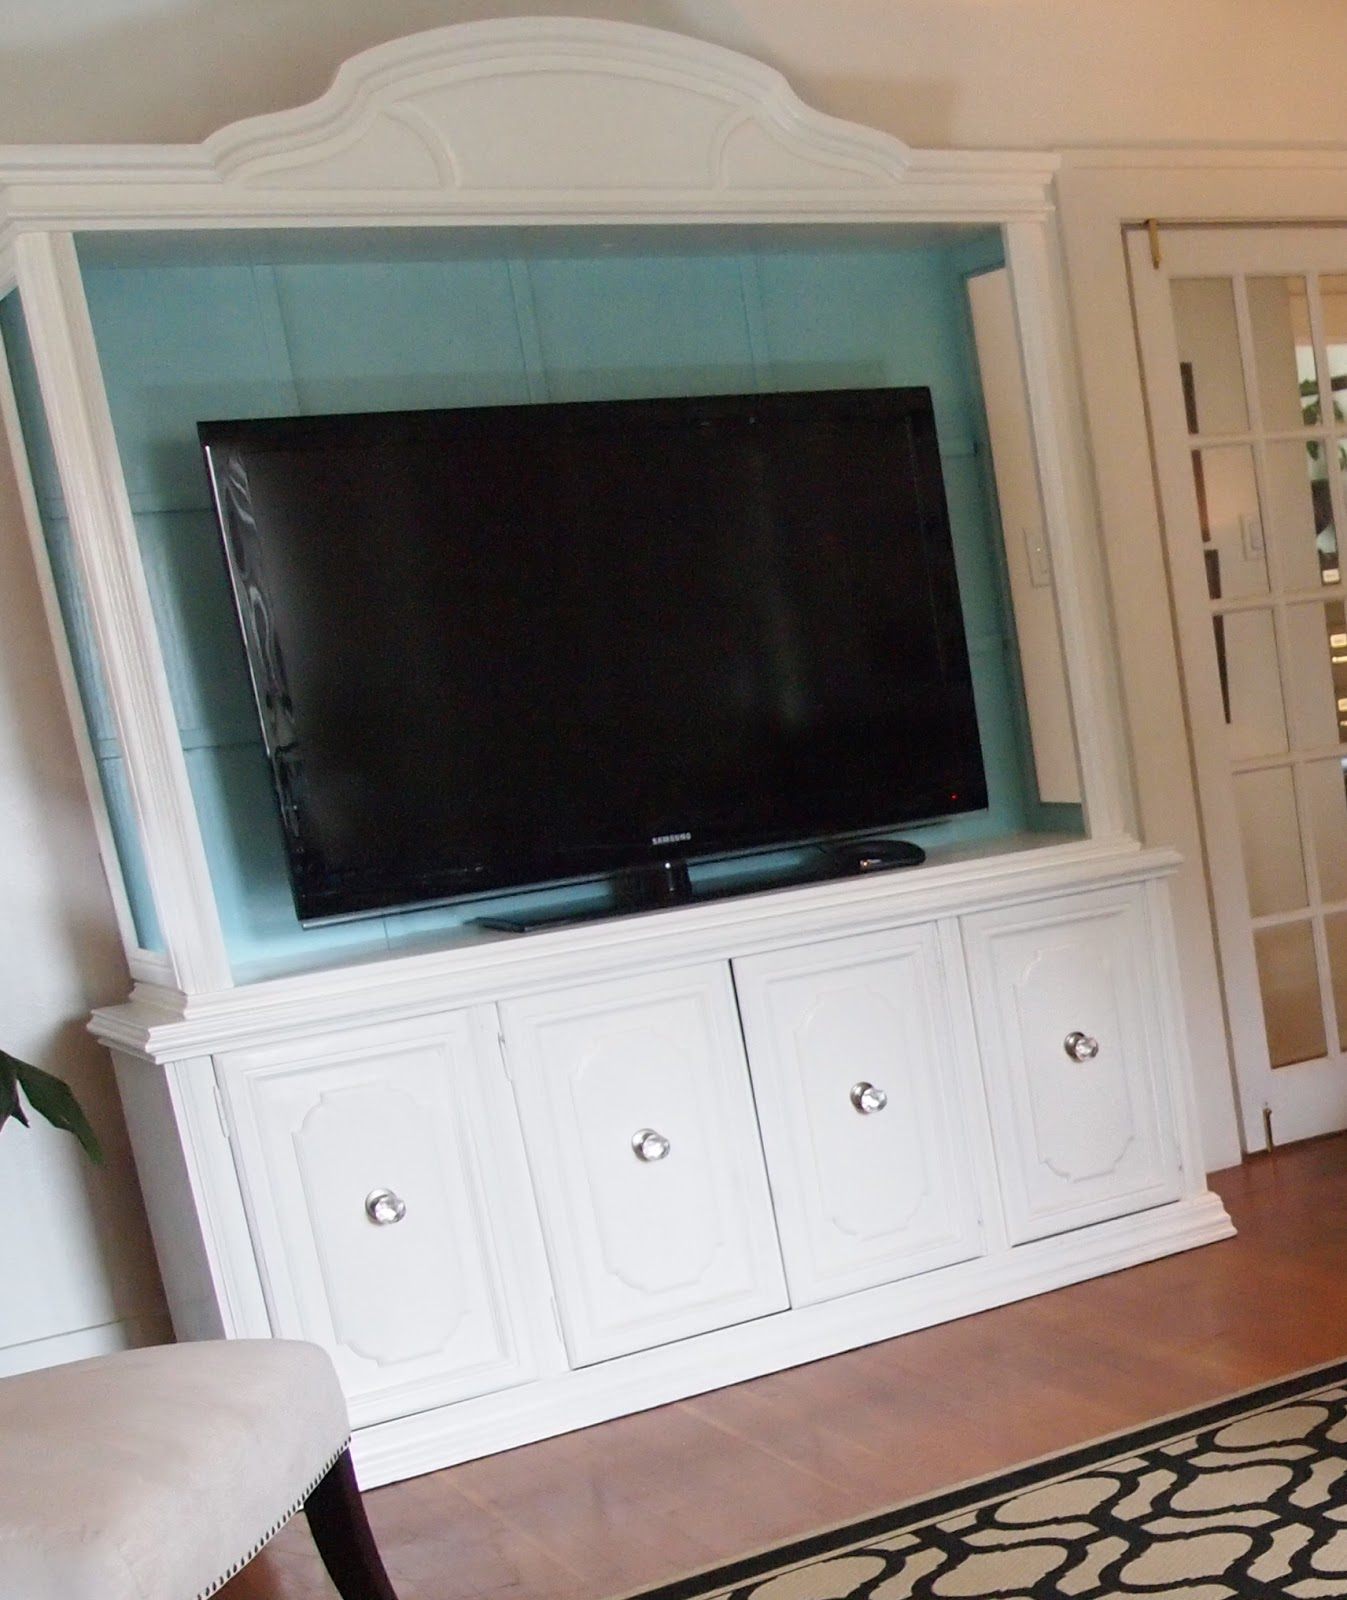 Refurbish Kitchen Cabinets: Divine Decor On A Dime: WHAT A LIL' PAINT CAN DO